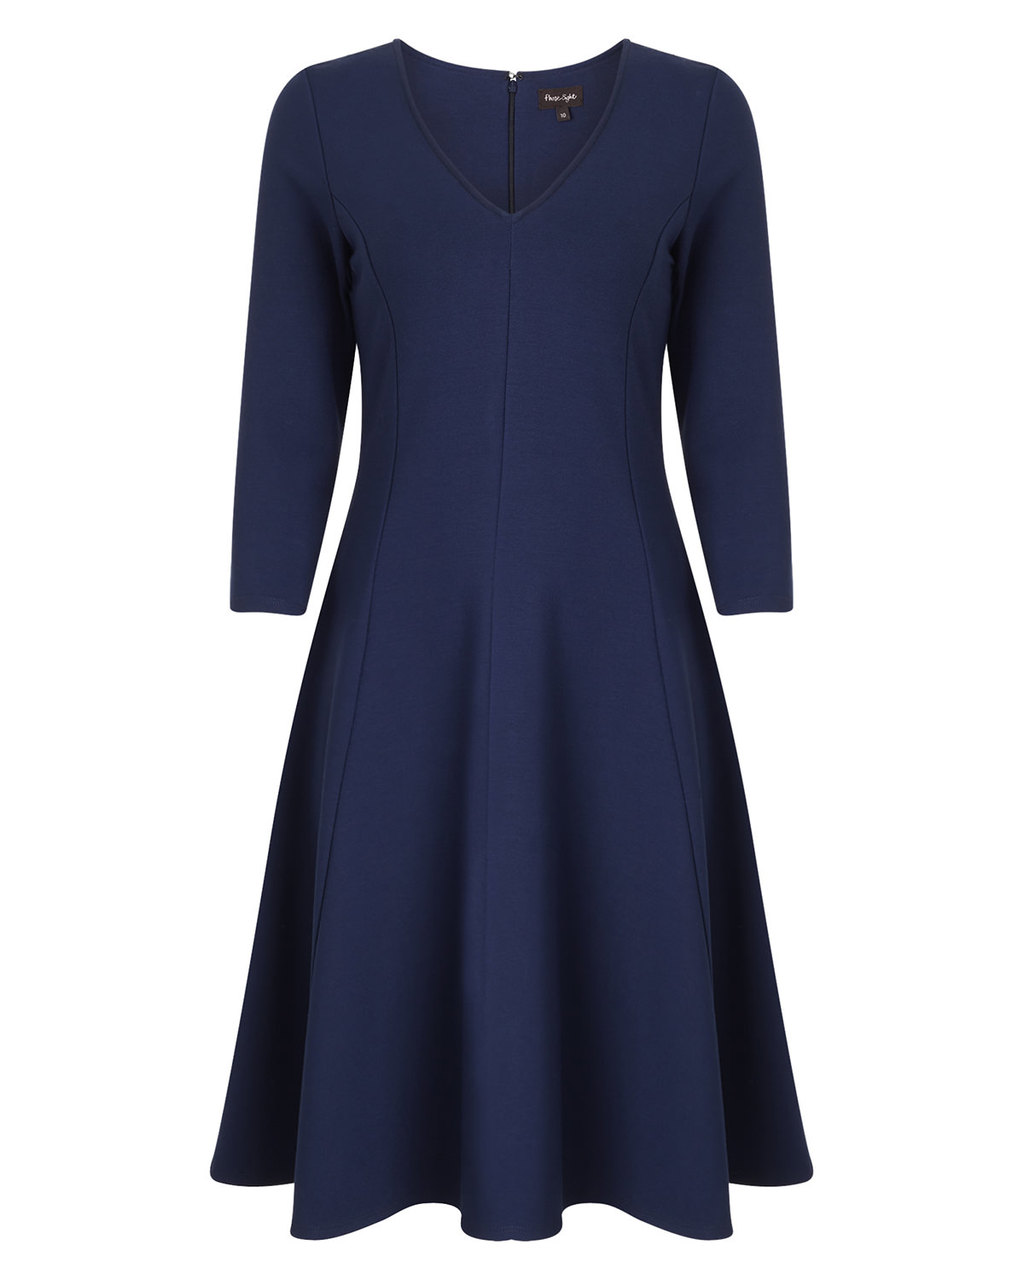 Sienna Skater Dress - neckline: v-neck; pattern: plain; predominant colour: navy; occasions: work, occasion; length: on the knee; fit: fitted at waist & bust; style: fit & flare; fibres: polyester/polyamide - mix; sleeve length: 3/4 length; sleeve style: standard; pattern type: fabric; texture group: other - light to midweight; season: a/w 2015